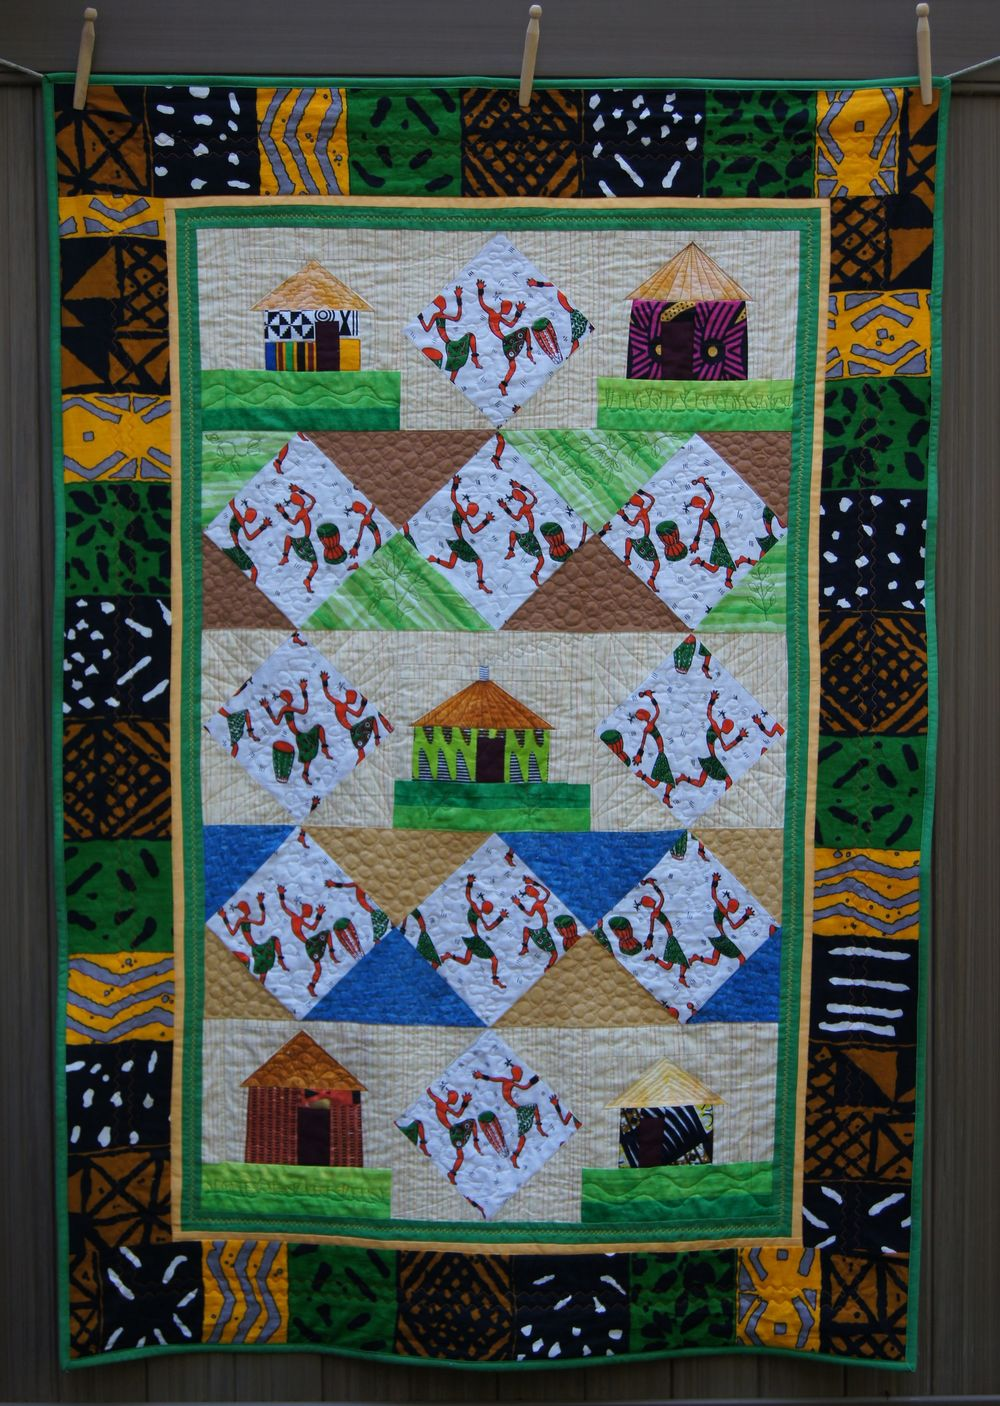 Quilt African Village with Dancers 9-14.jpg